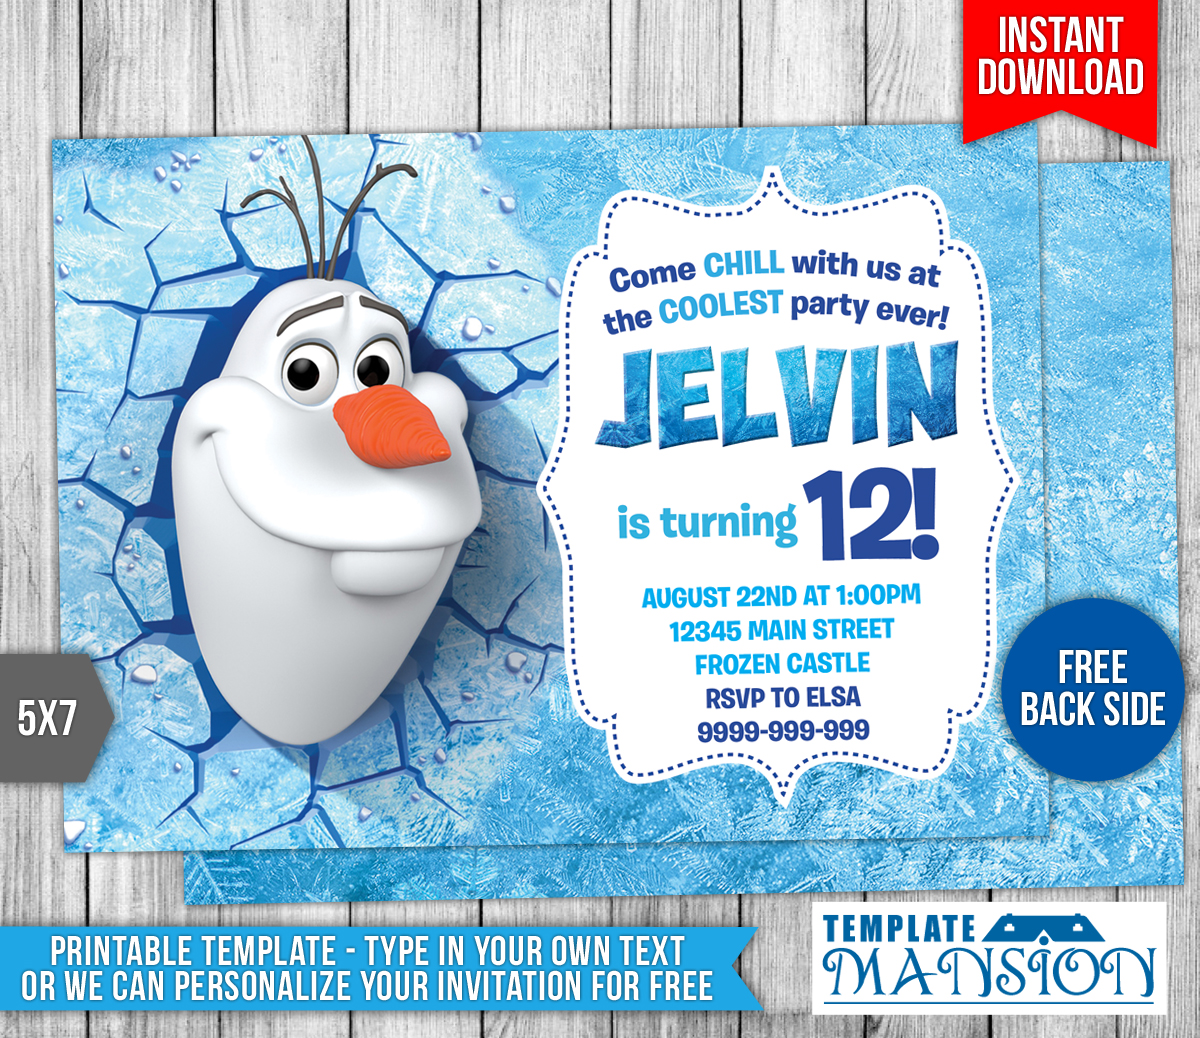 Olaf Disney Frozen Birthday Invitation by templatemansion ...